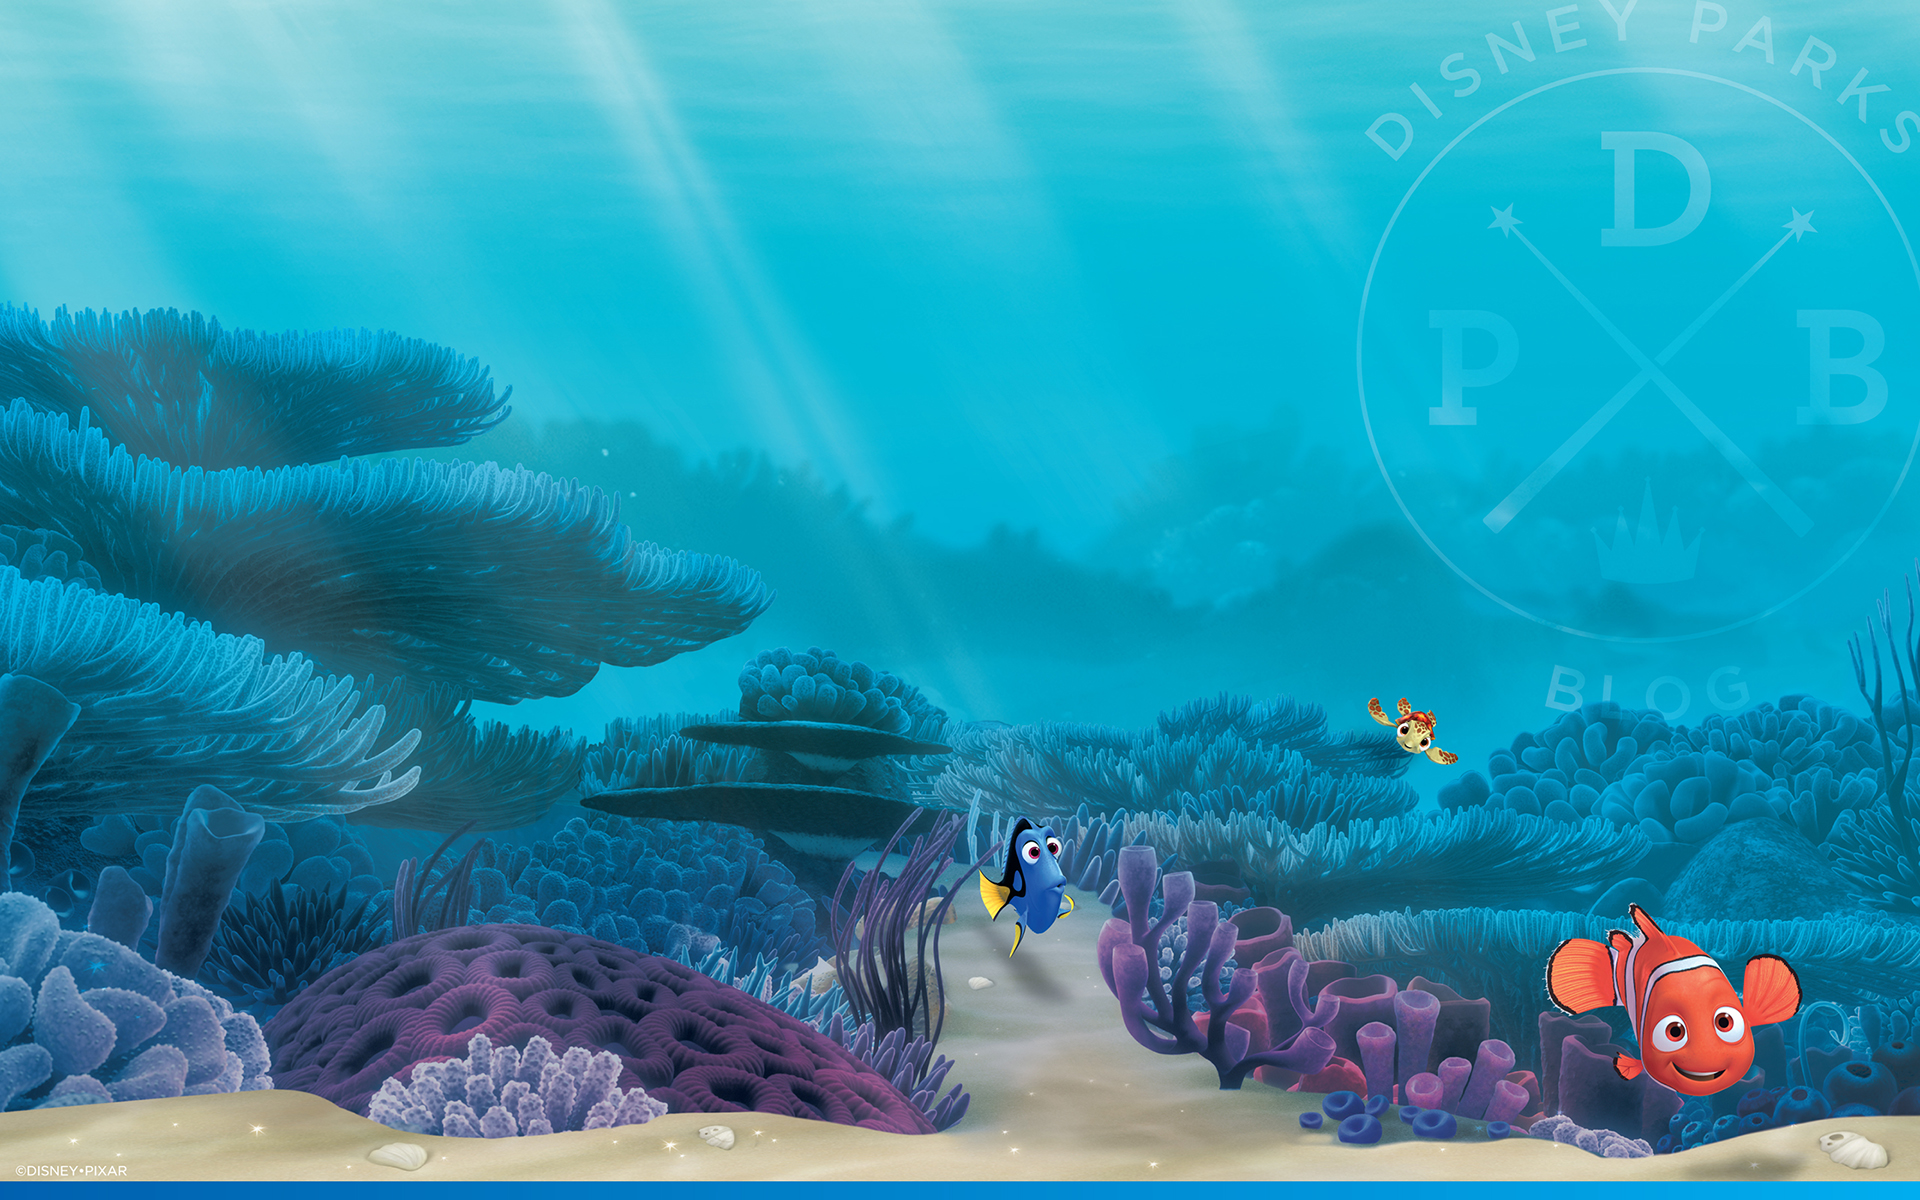 Celebrate the 15th Anniversary of 'Finding Nemo' with This Wallpaper